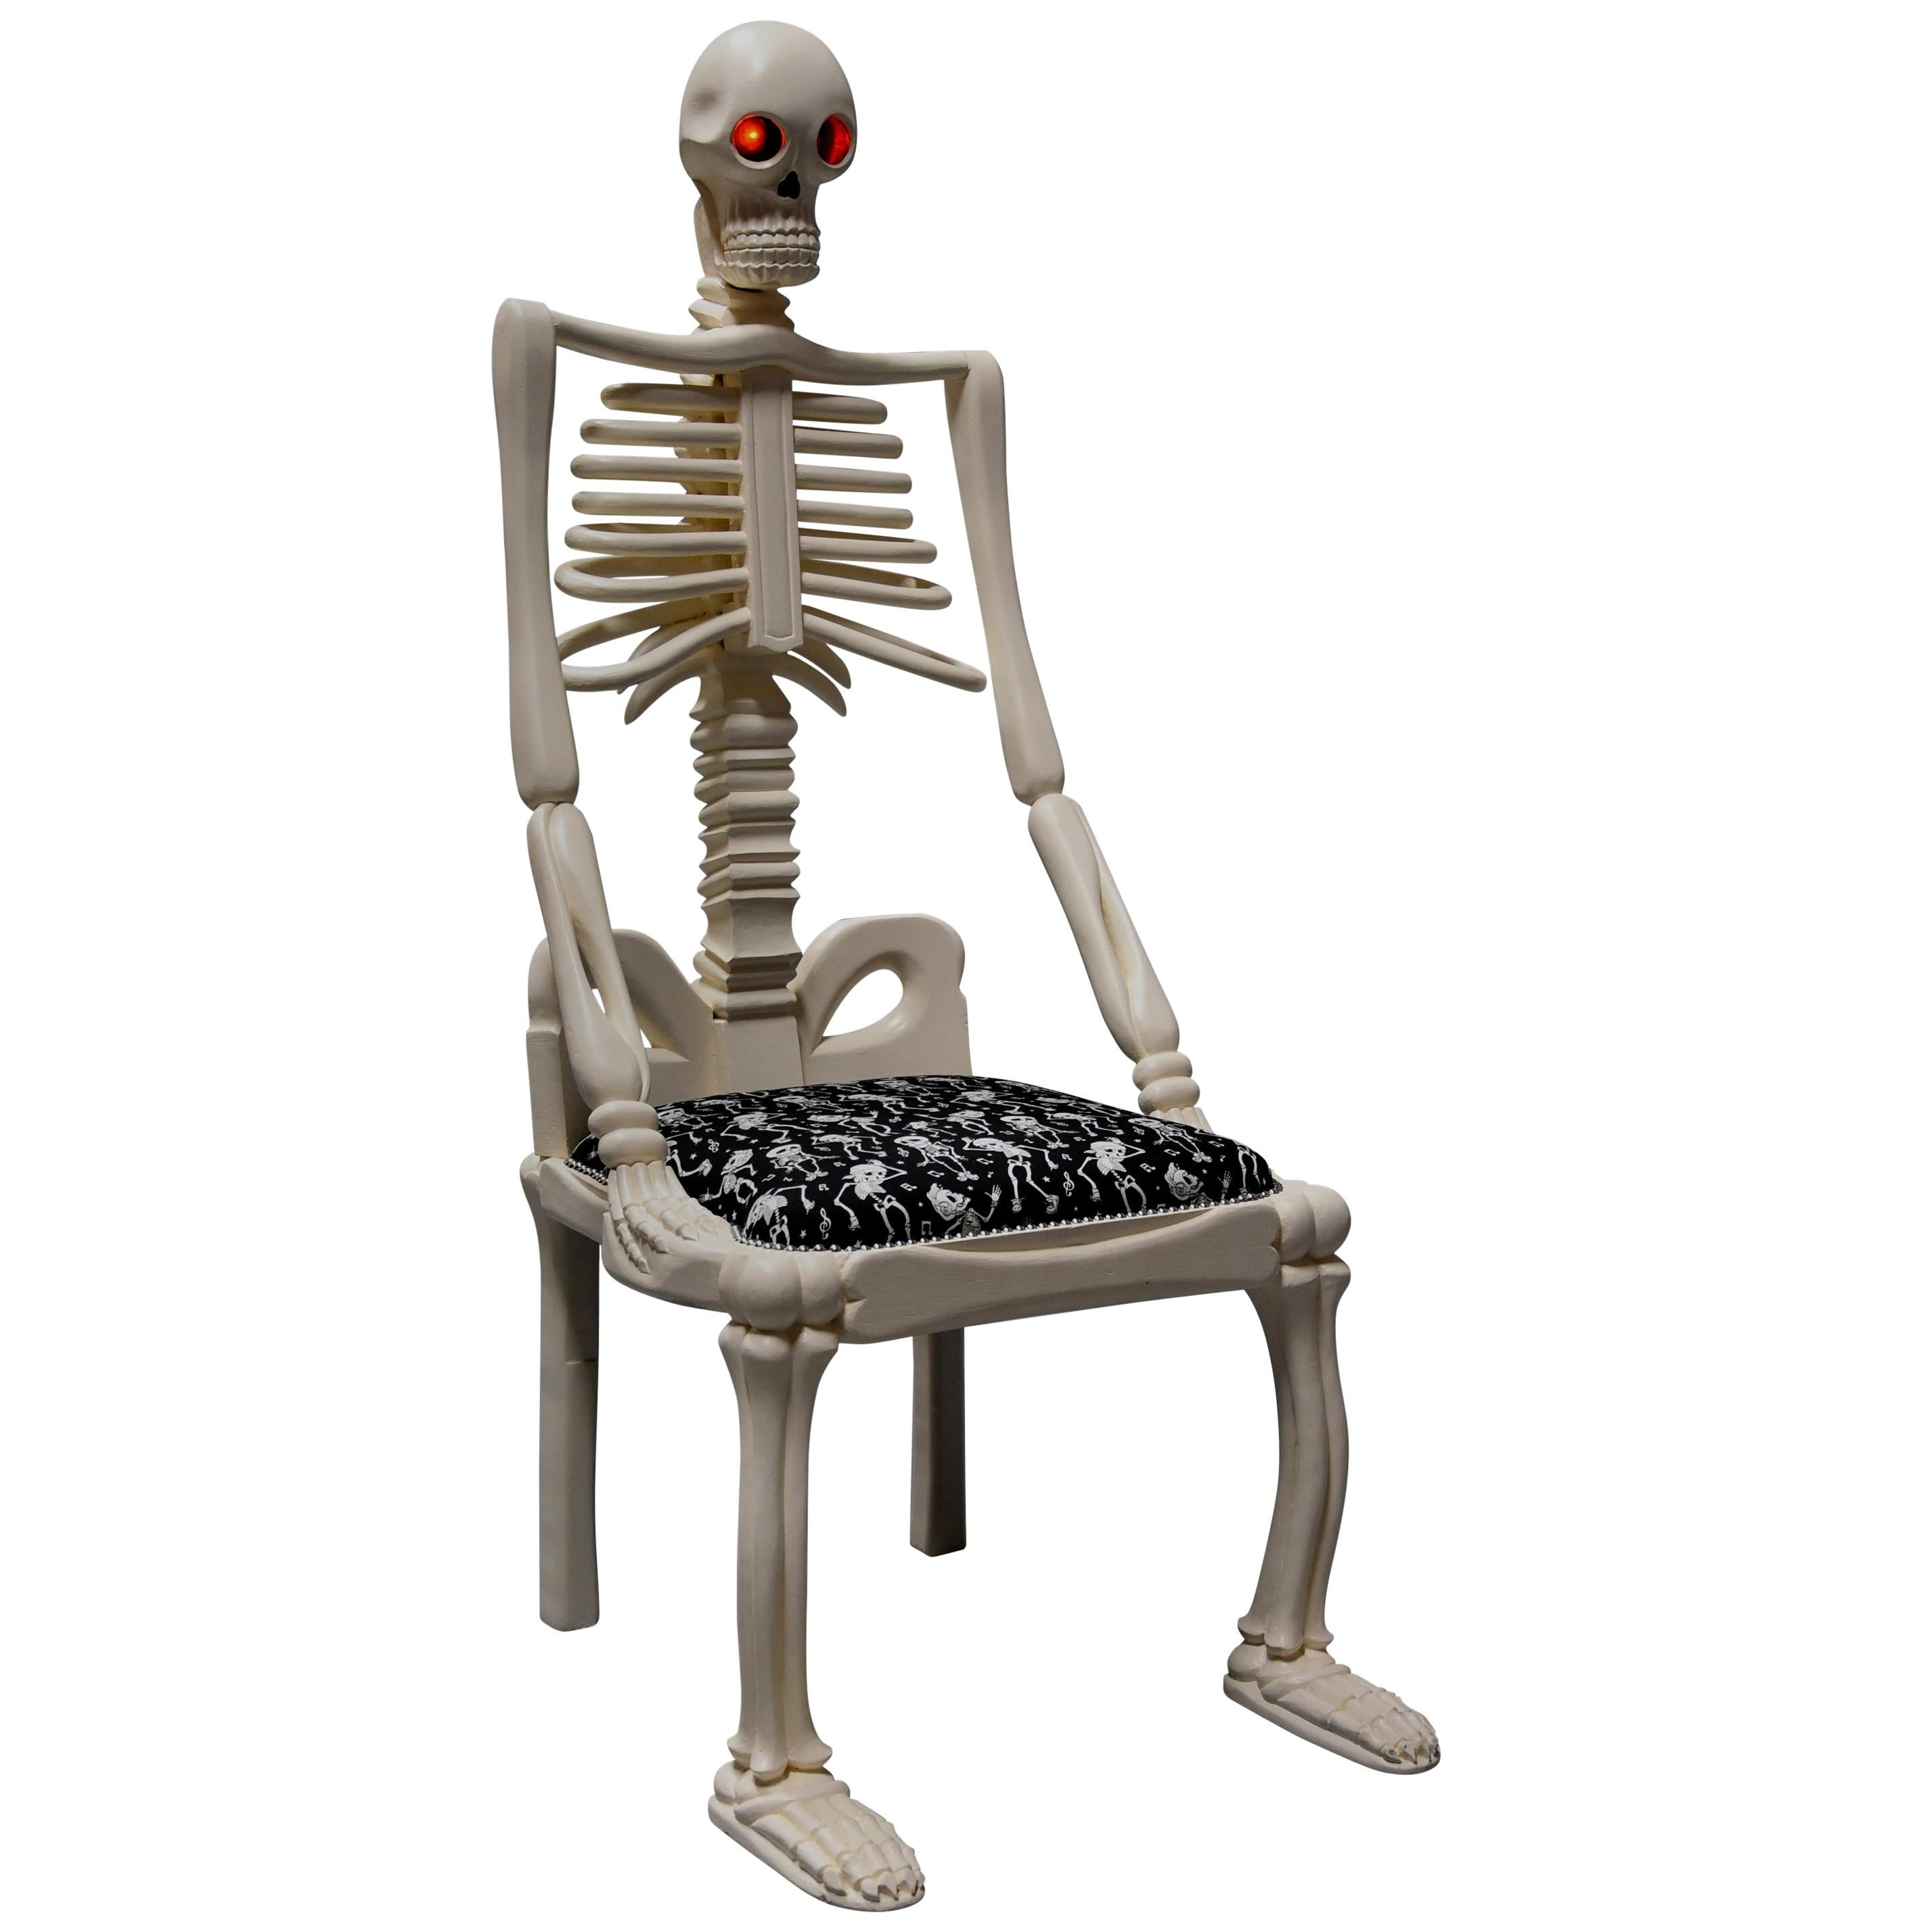 Highly Decorative And Unusual Hand Carved And Painted Wooden Skeleton Chair  For Sale